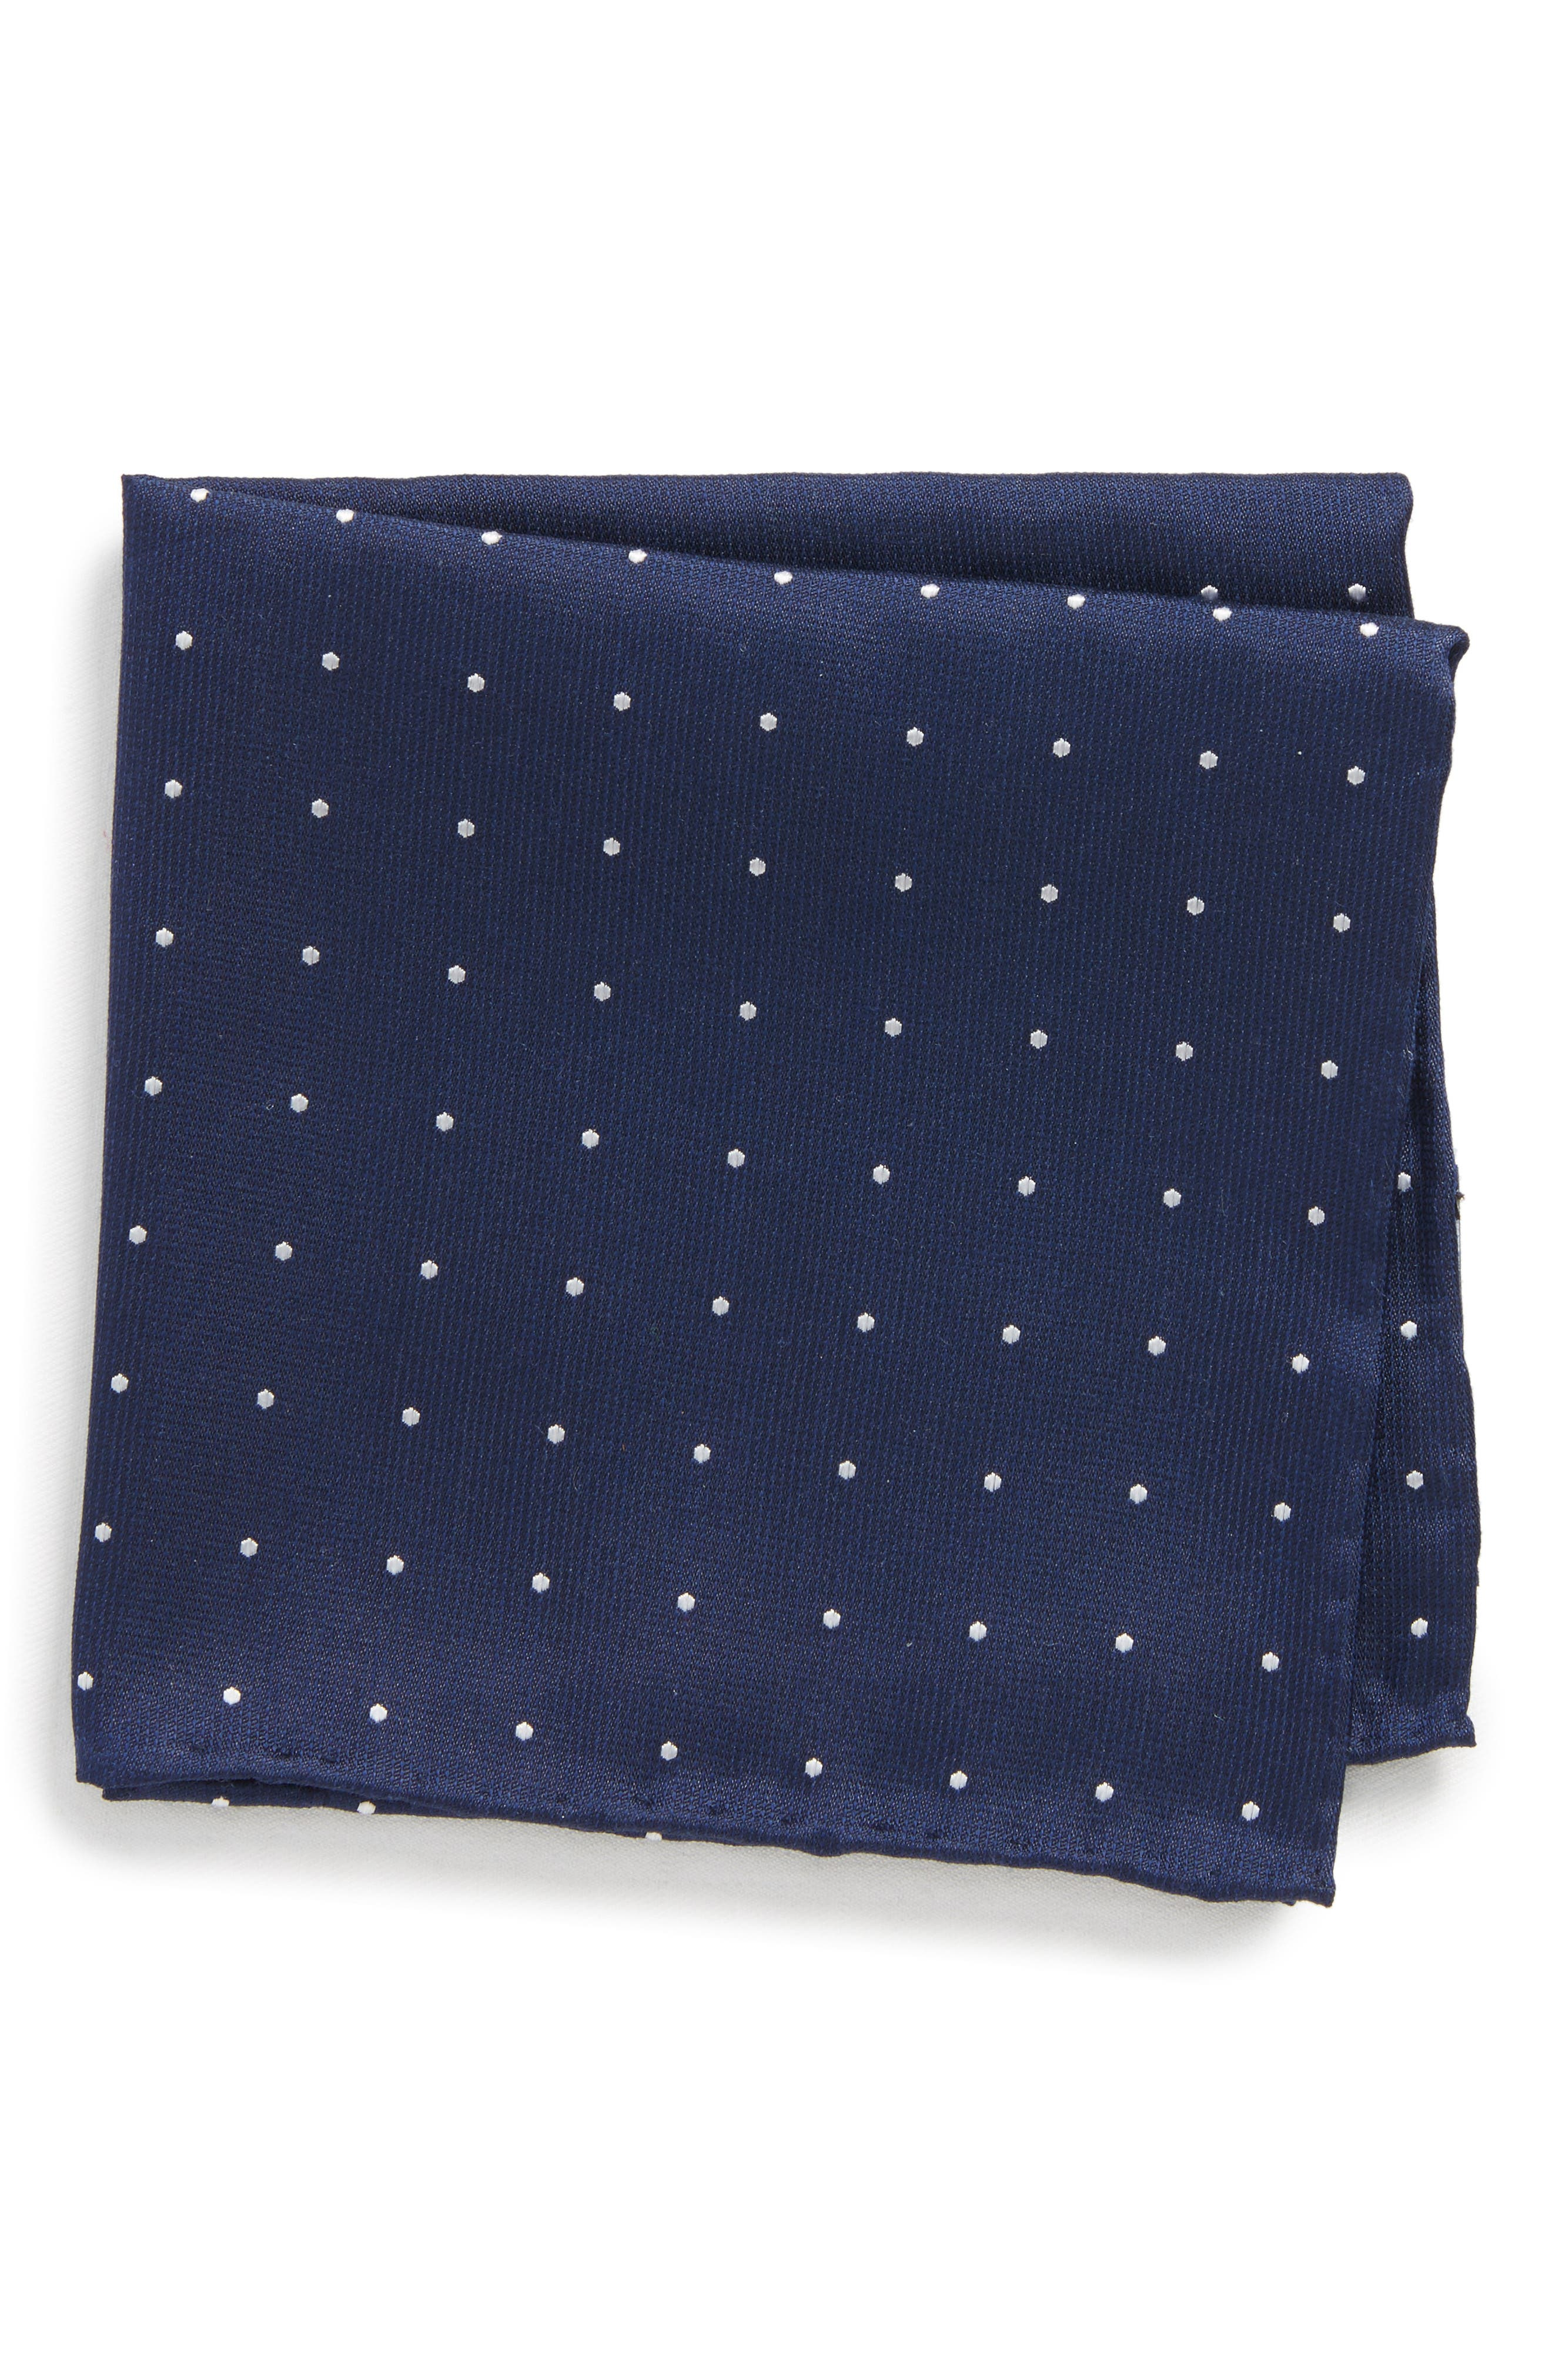 The Tie Bar Dot Silk Pocket Square